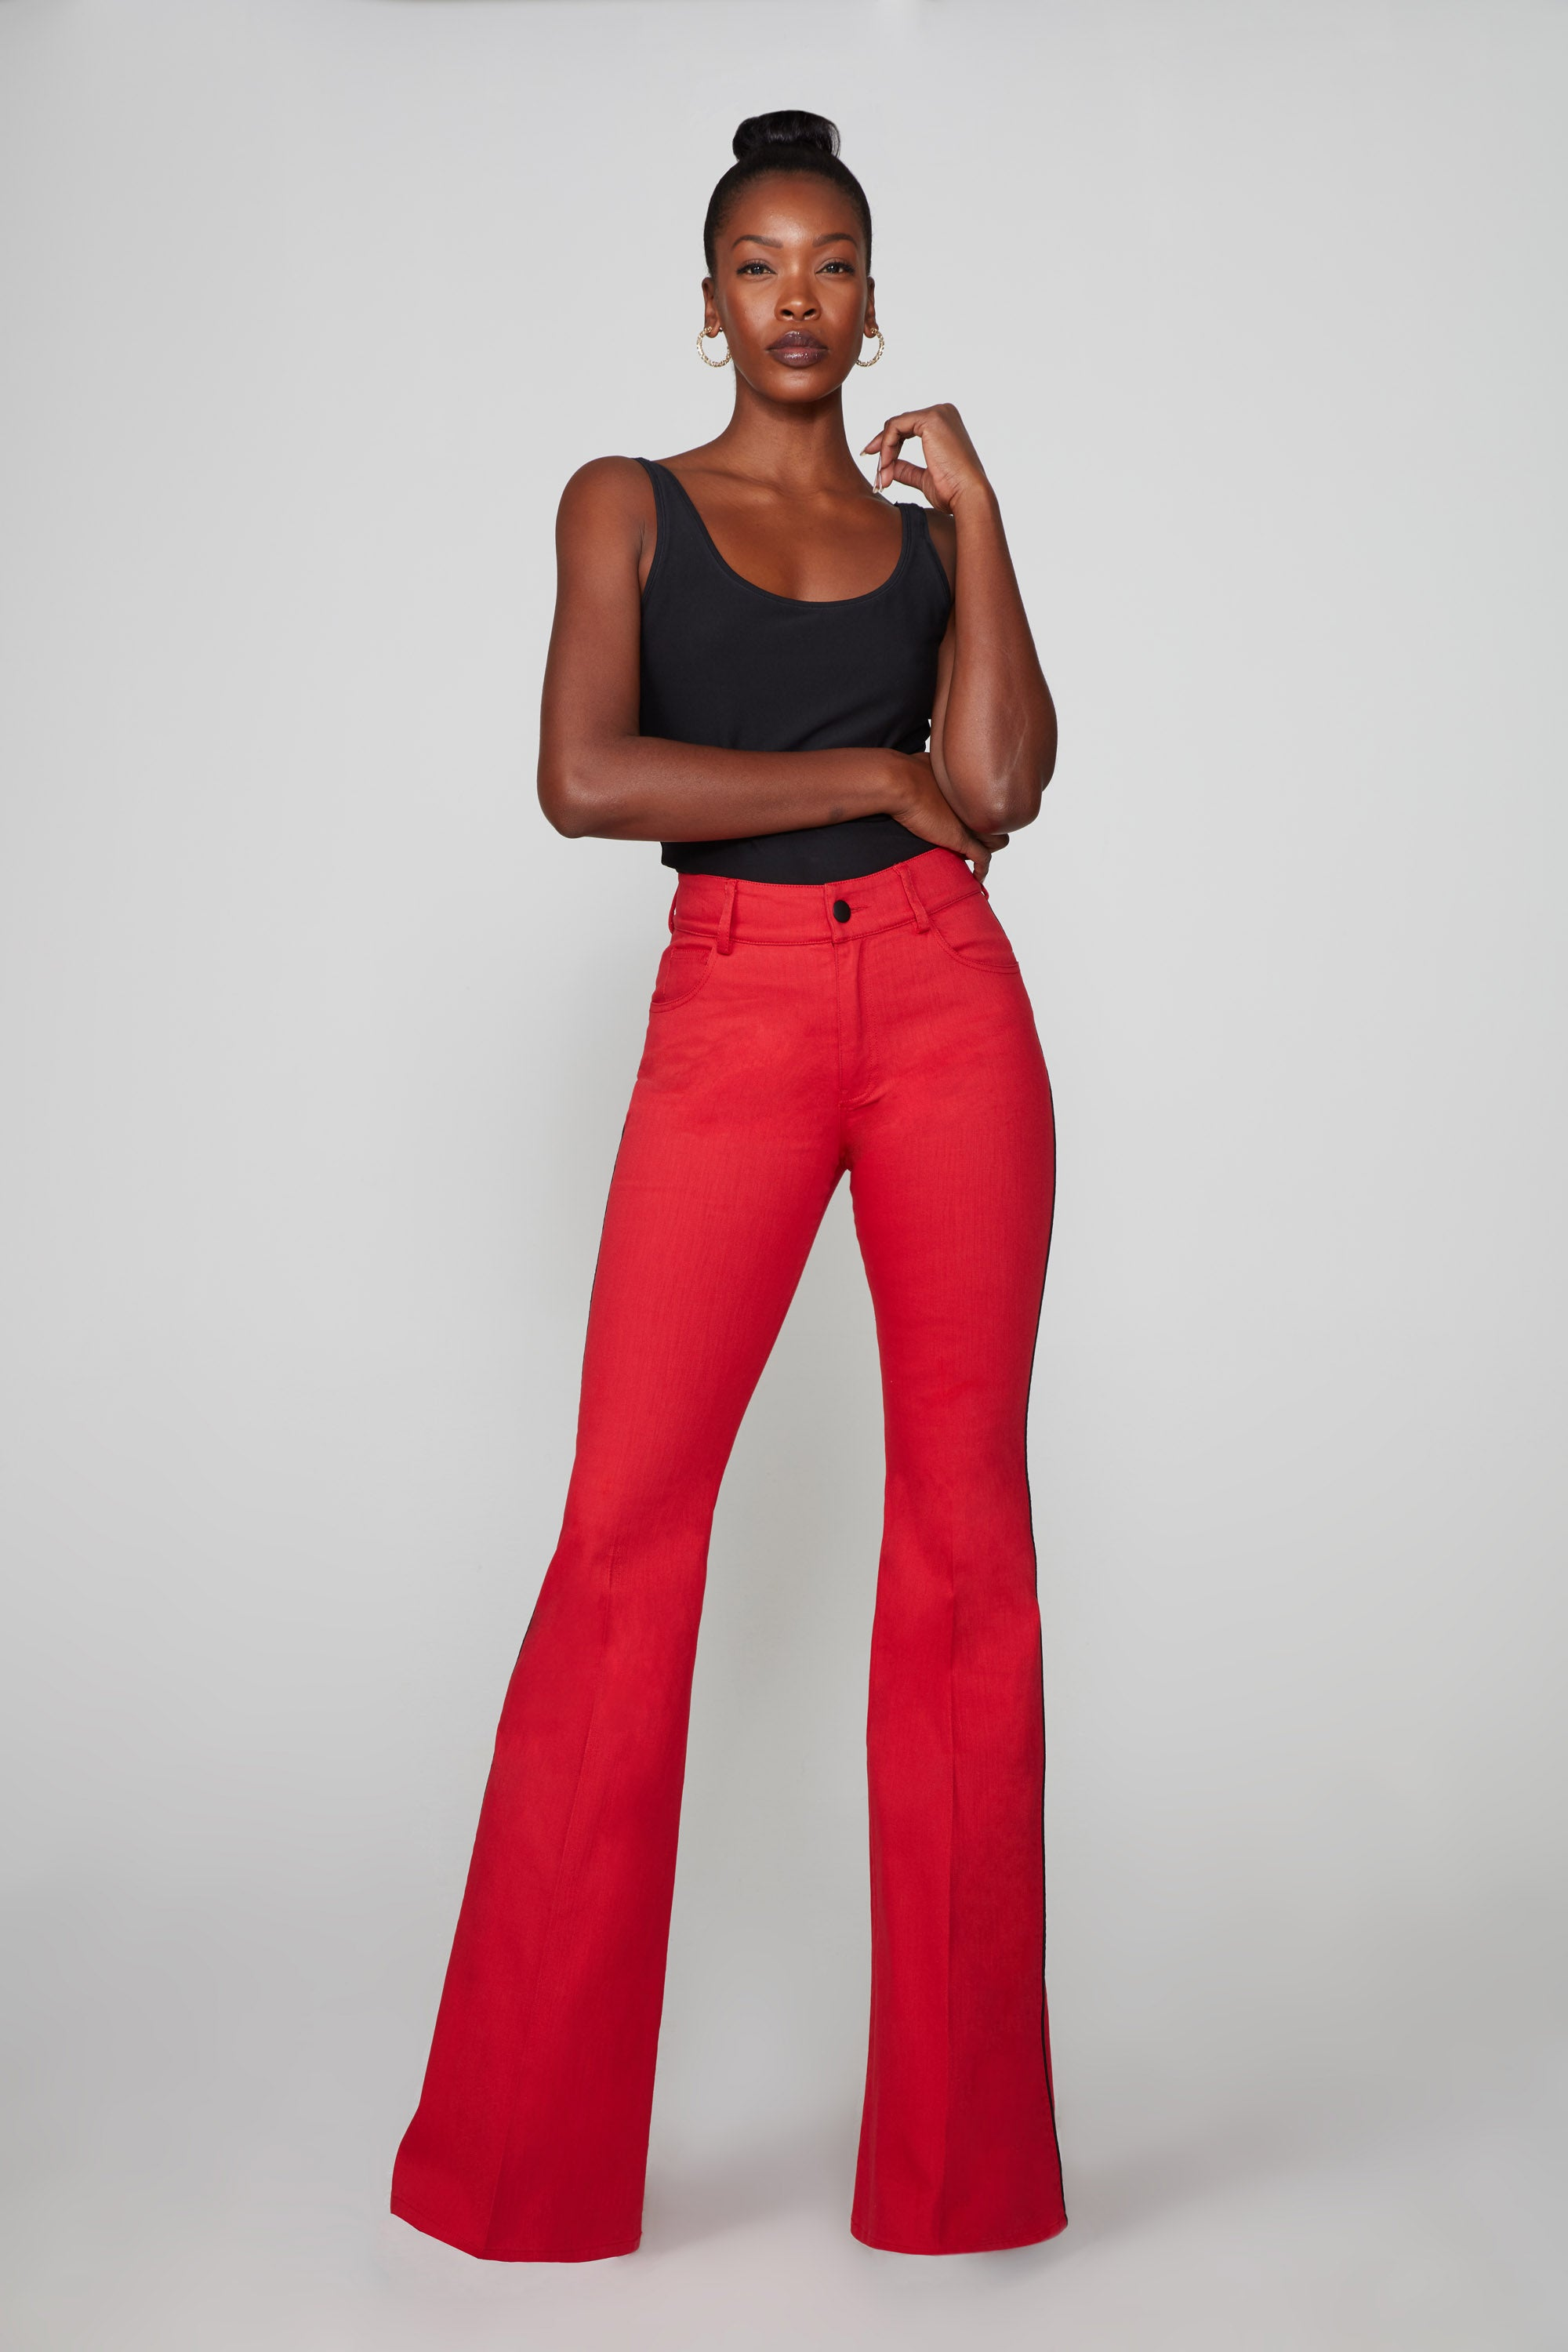 Celeta Pant - Chili Pepper: thesixes.com